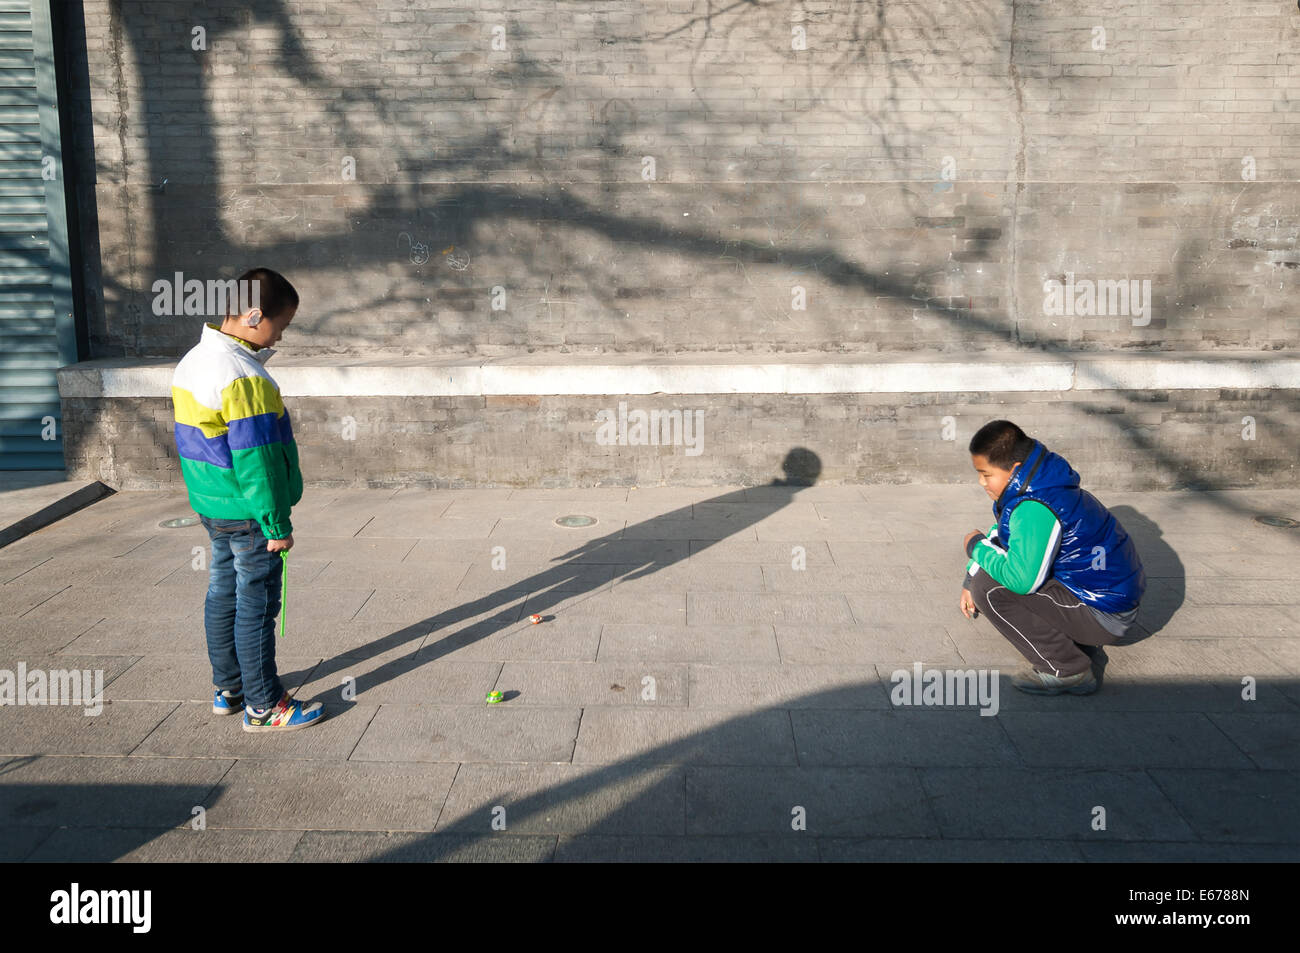 Two young boys playing outdoors in a Beijing hutong - Stock Image